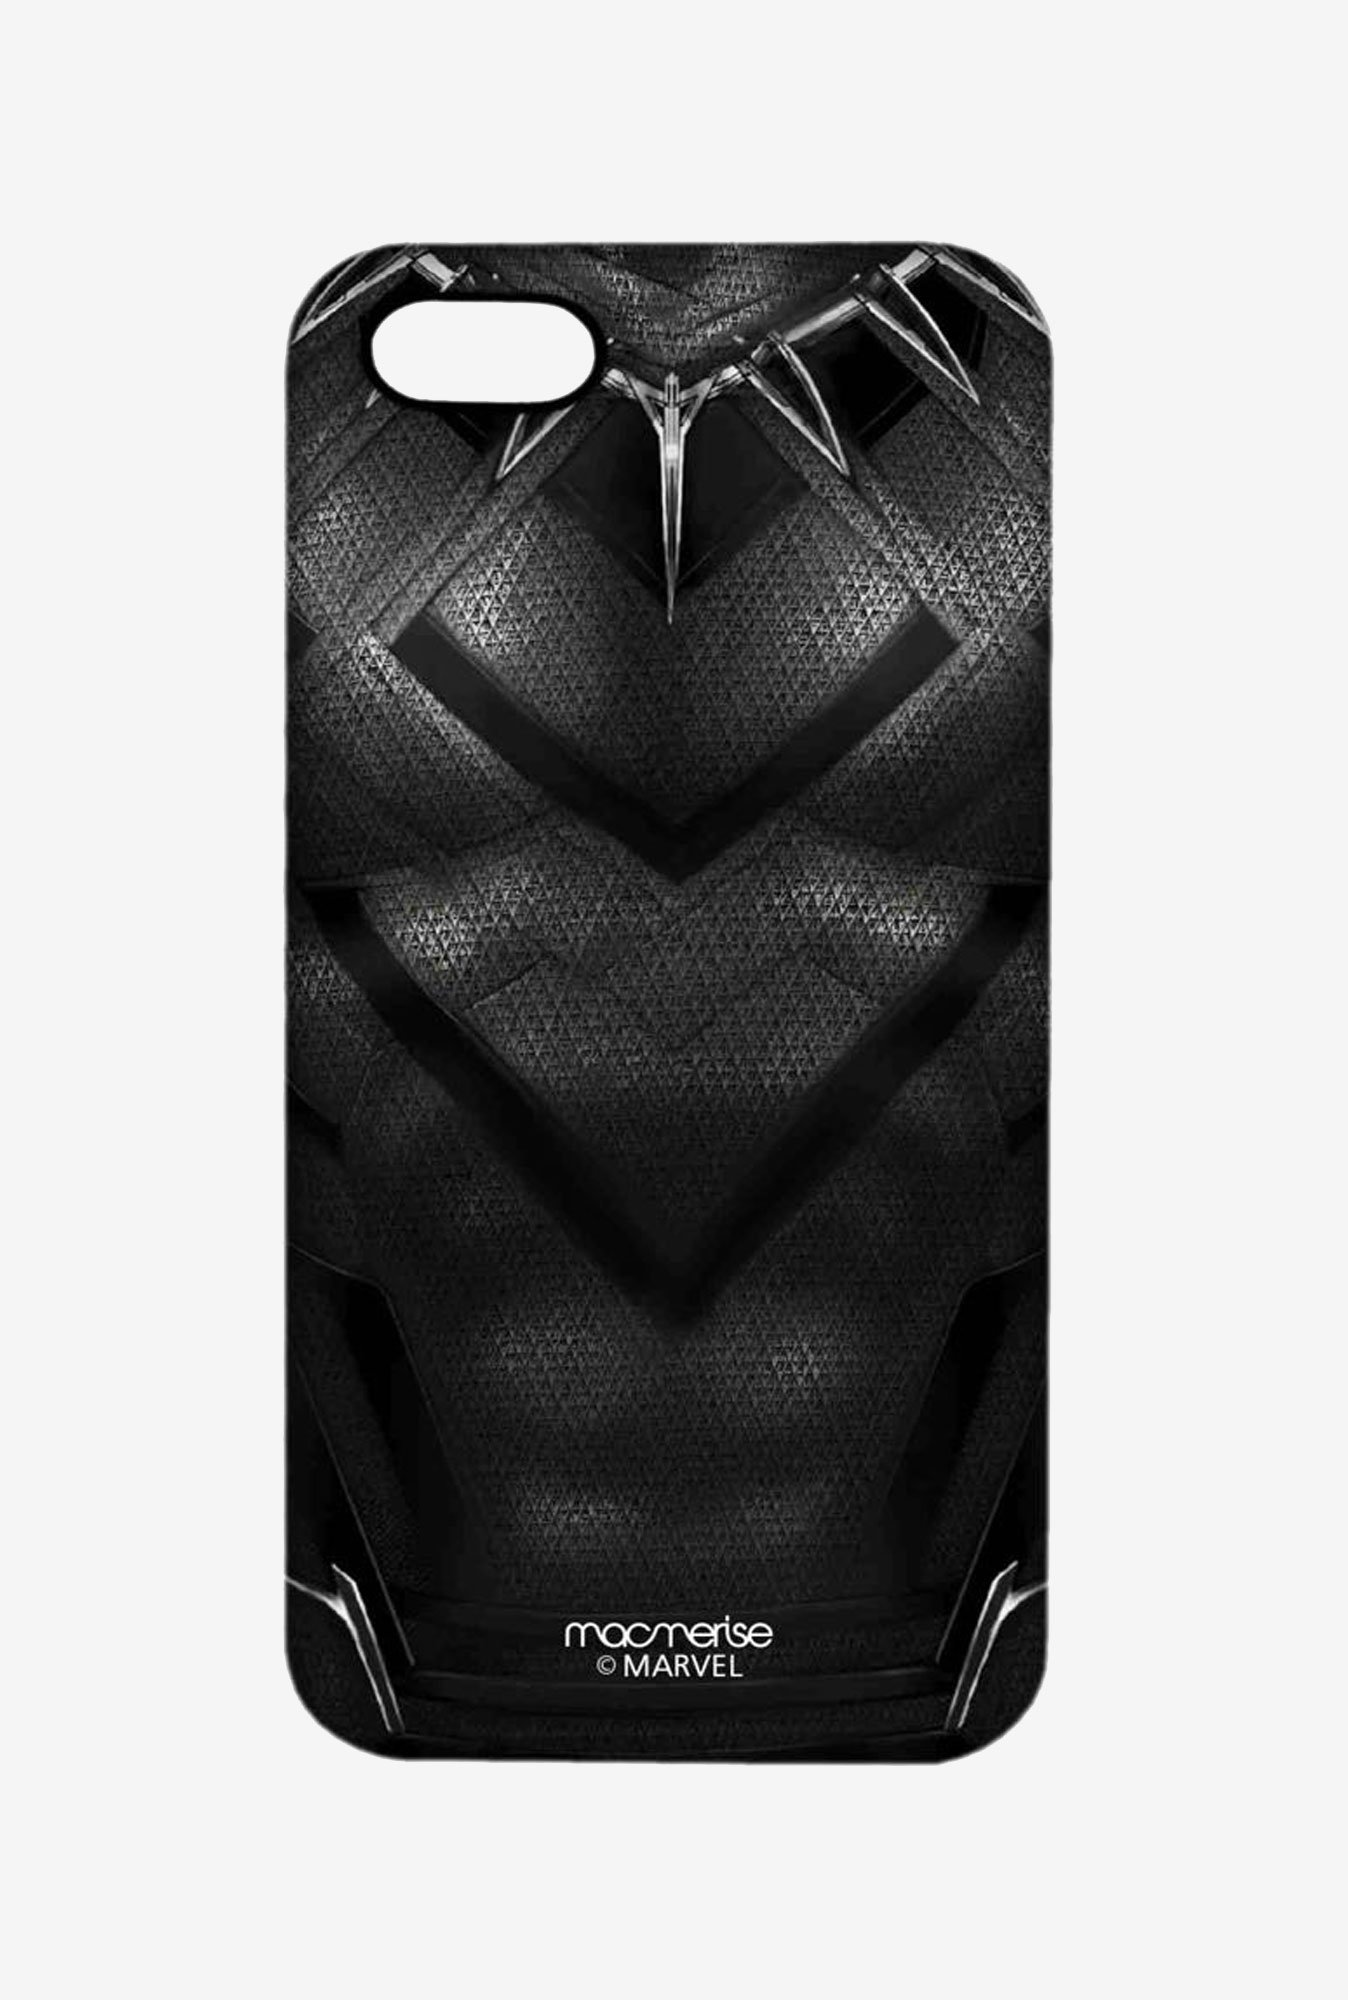 Macmerise Suit up Black Panther Pro Case for iPhone SE